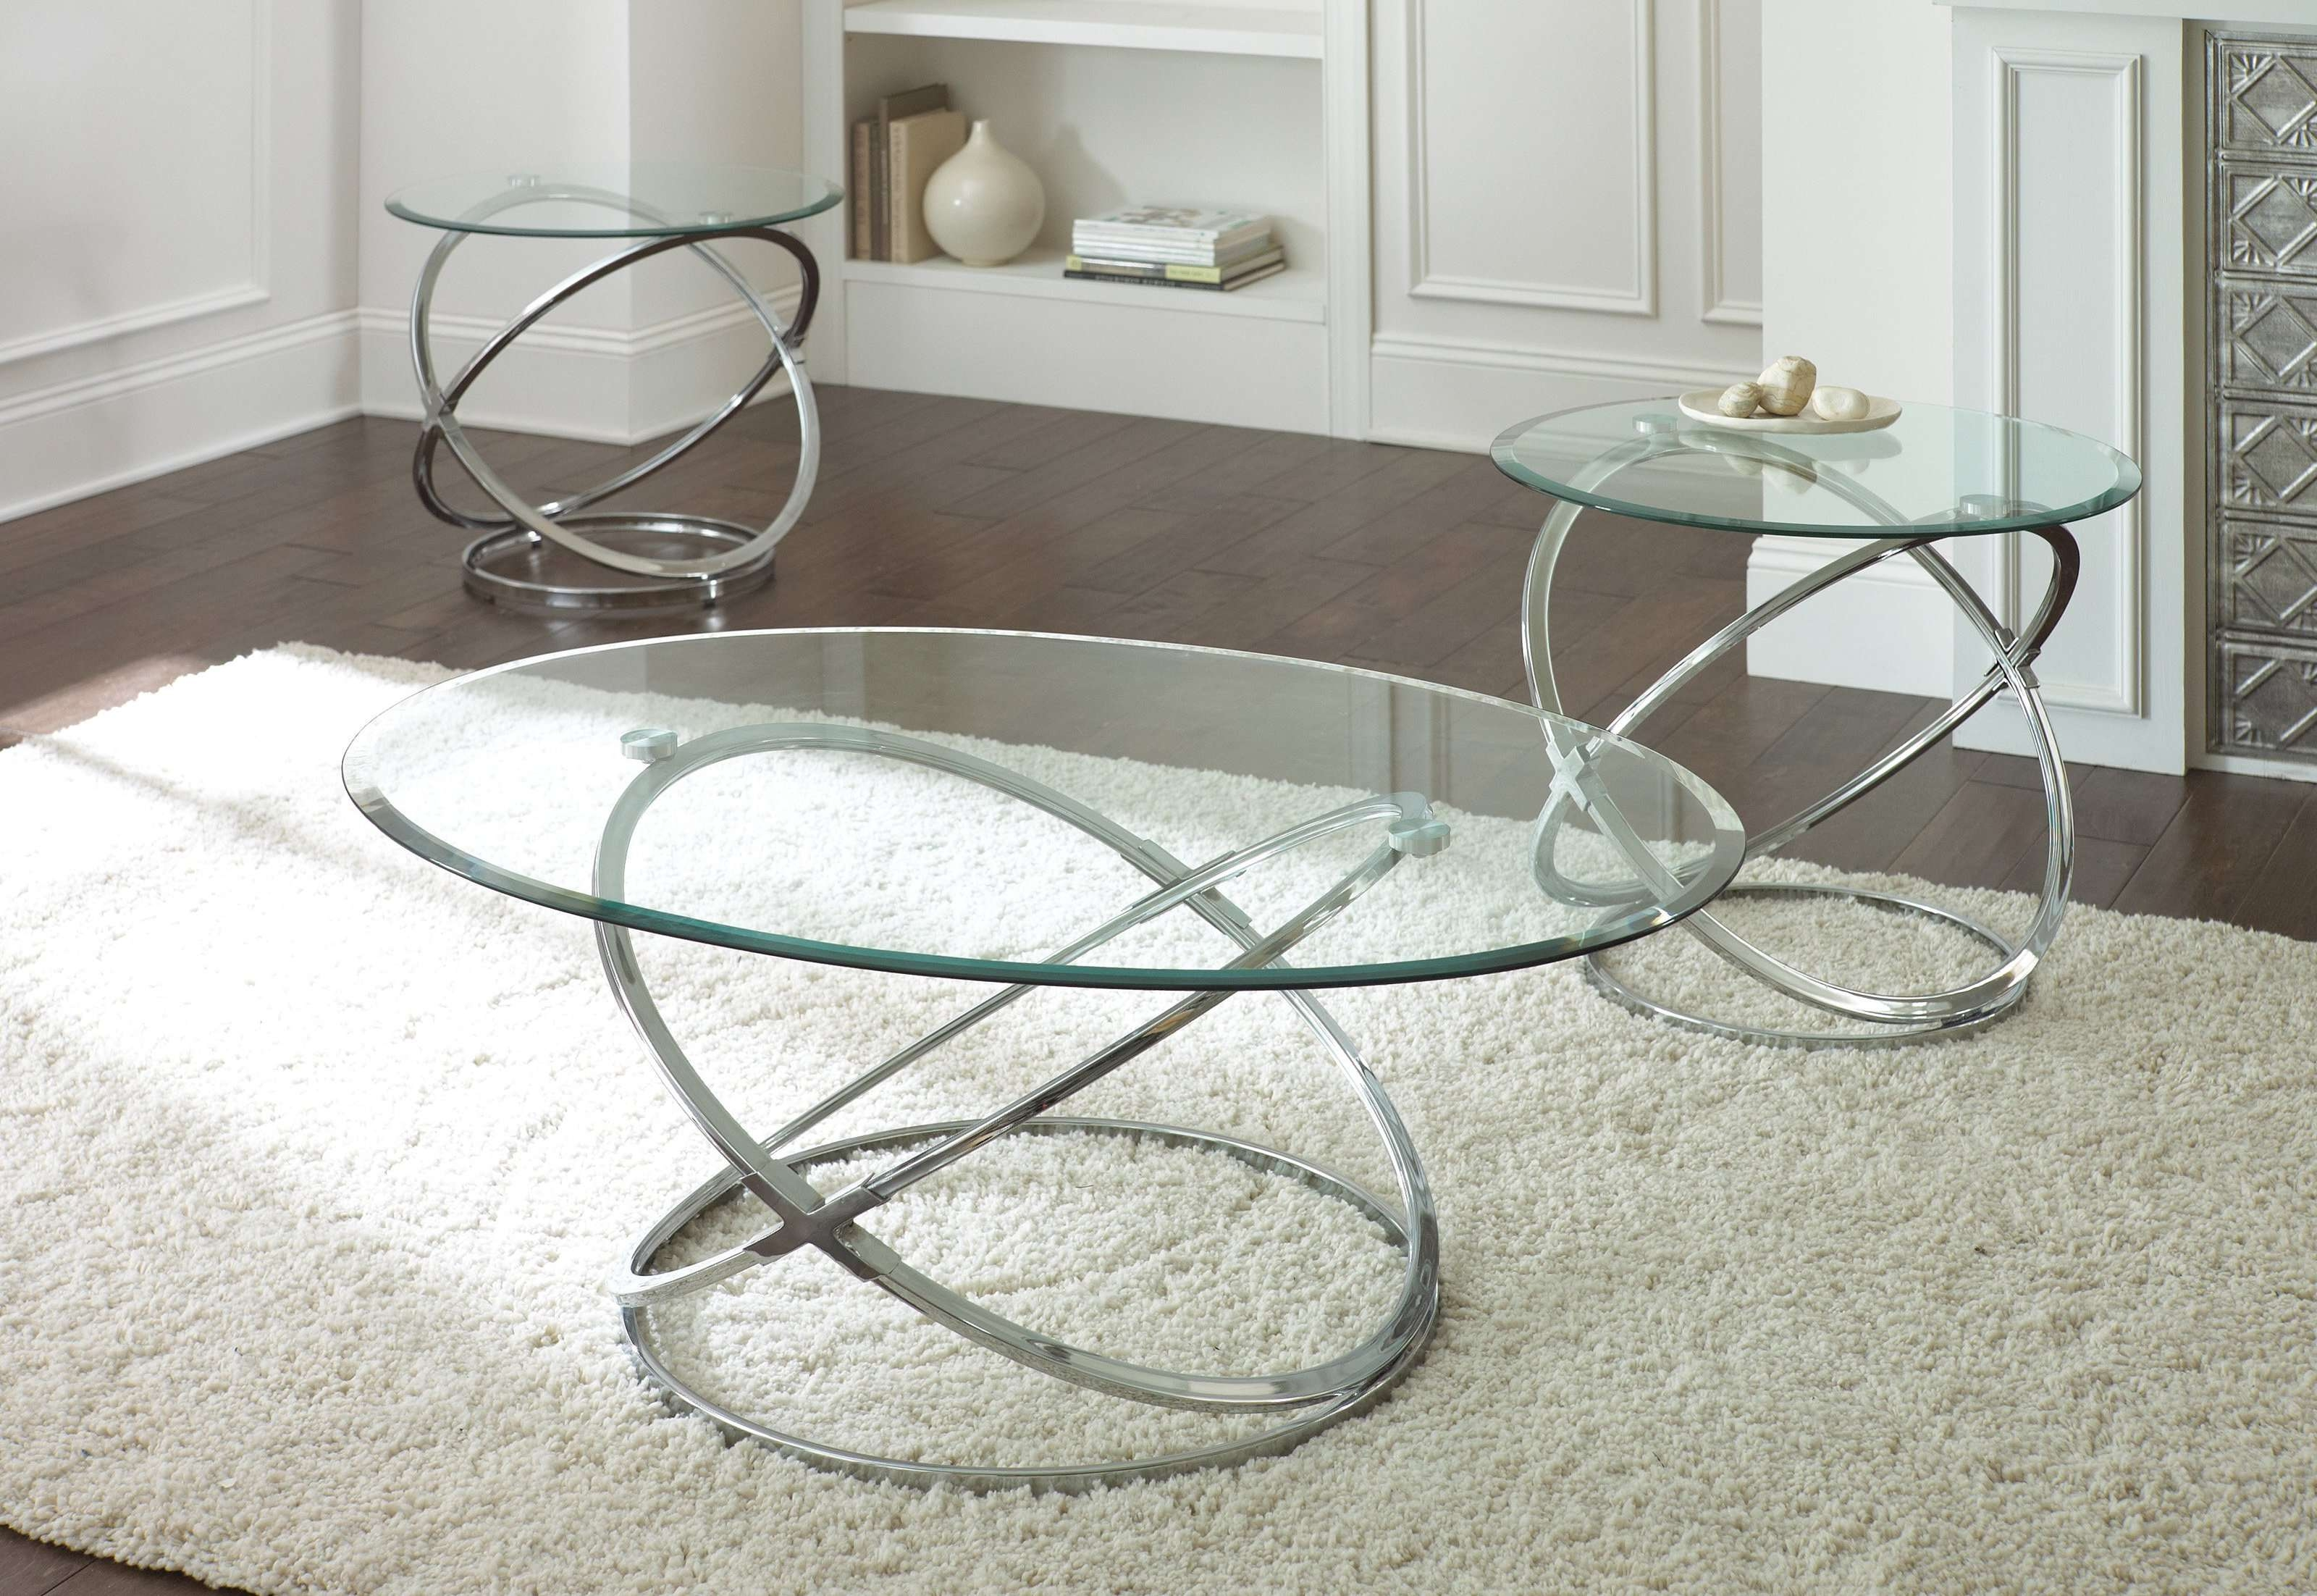 Interesting Unique Coffee Table Uk Design Ideas Unique Glass With Regard To 2018 Unique Glass Coffee Tables (View 9 of 20)